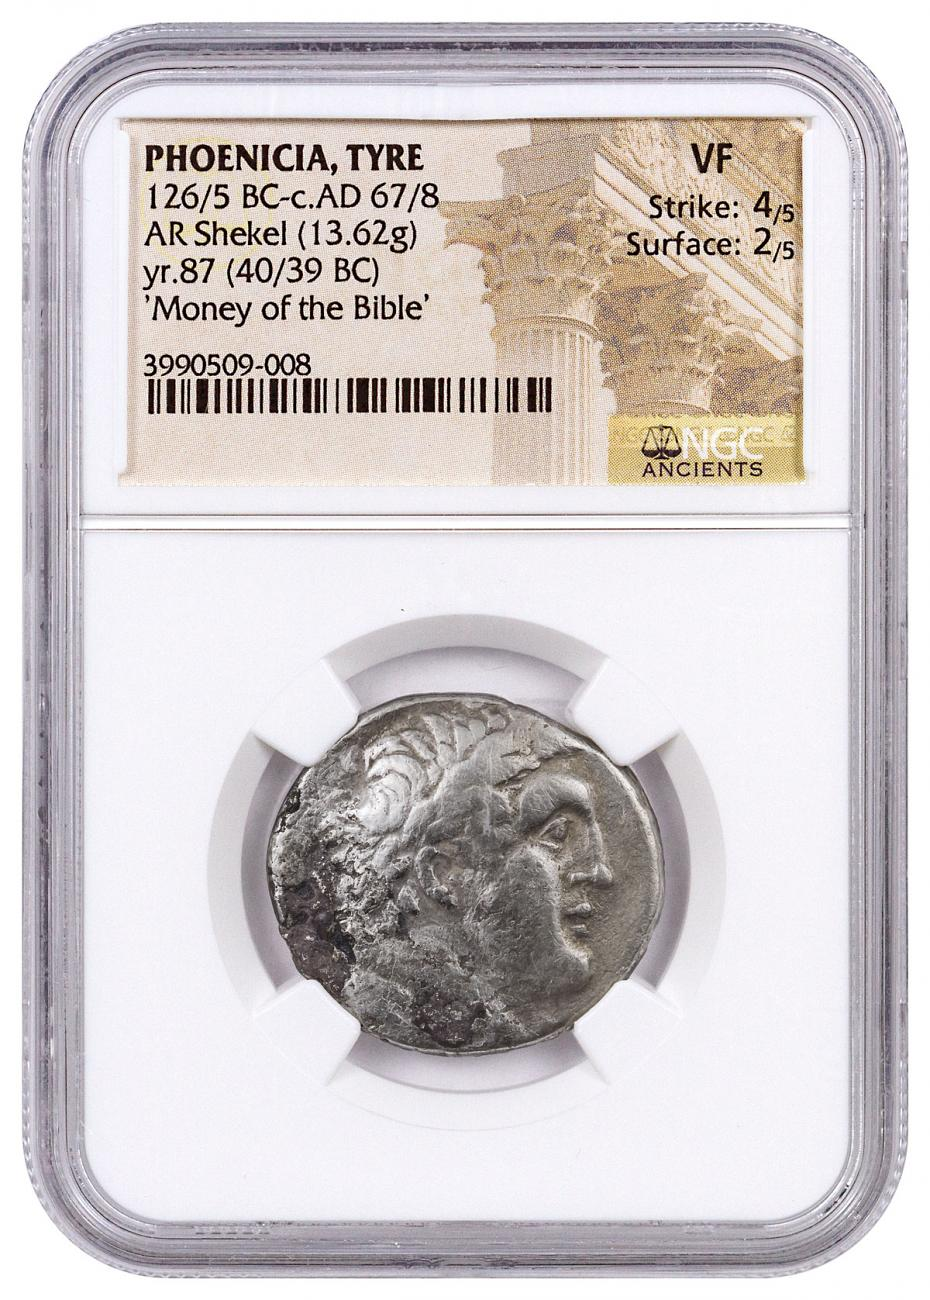 Phoenicia, Tyre Silver Shekel (126/5 BC-c.AD 67/8) - Money of the Bible Yr.87 (40/39 BC) - obv. Melkart/rv. Eagle on Prow NGC VF (Strike: 4/5, Surface: 2/5)